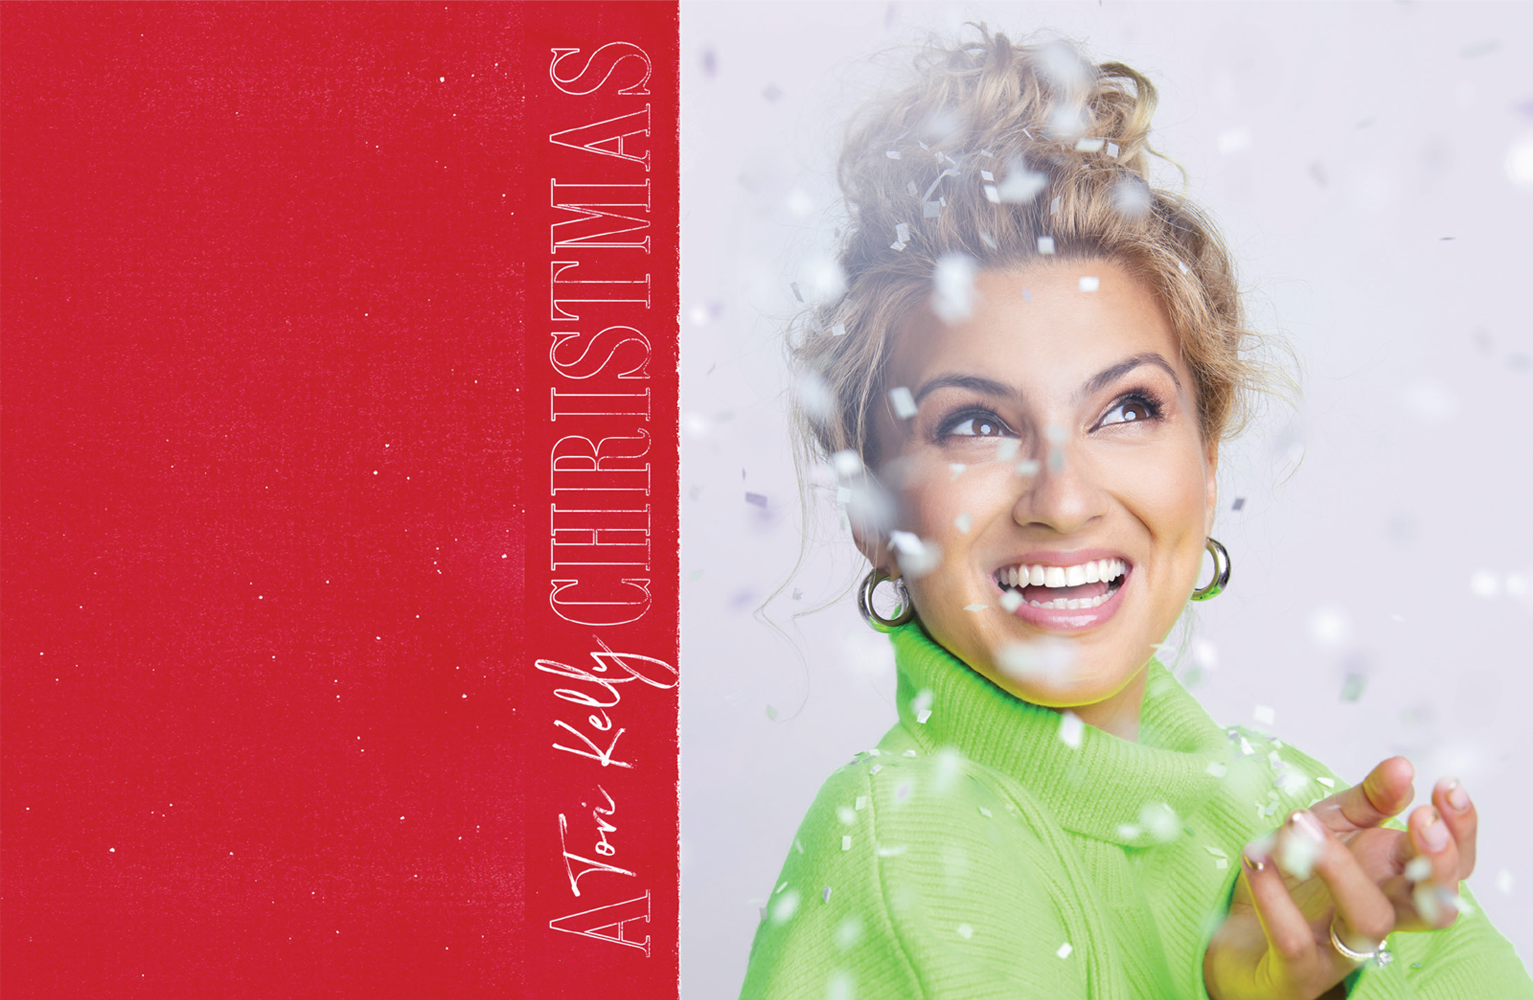 Tori Kelly's holiday album cover.